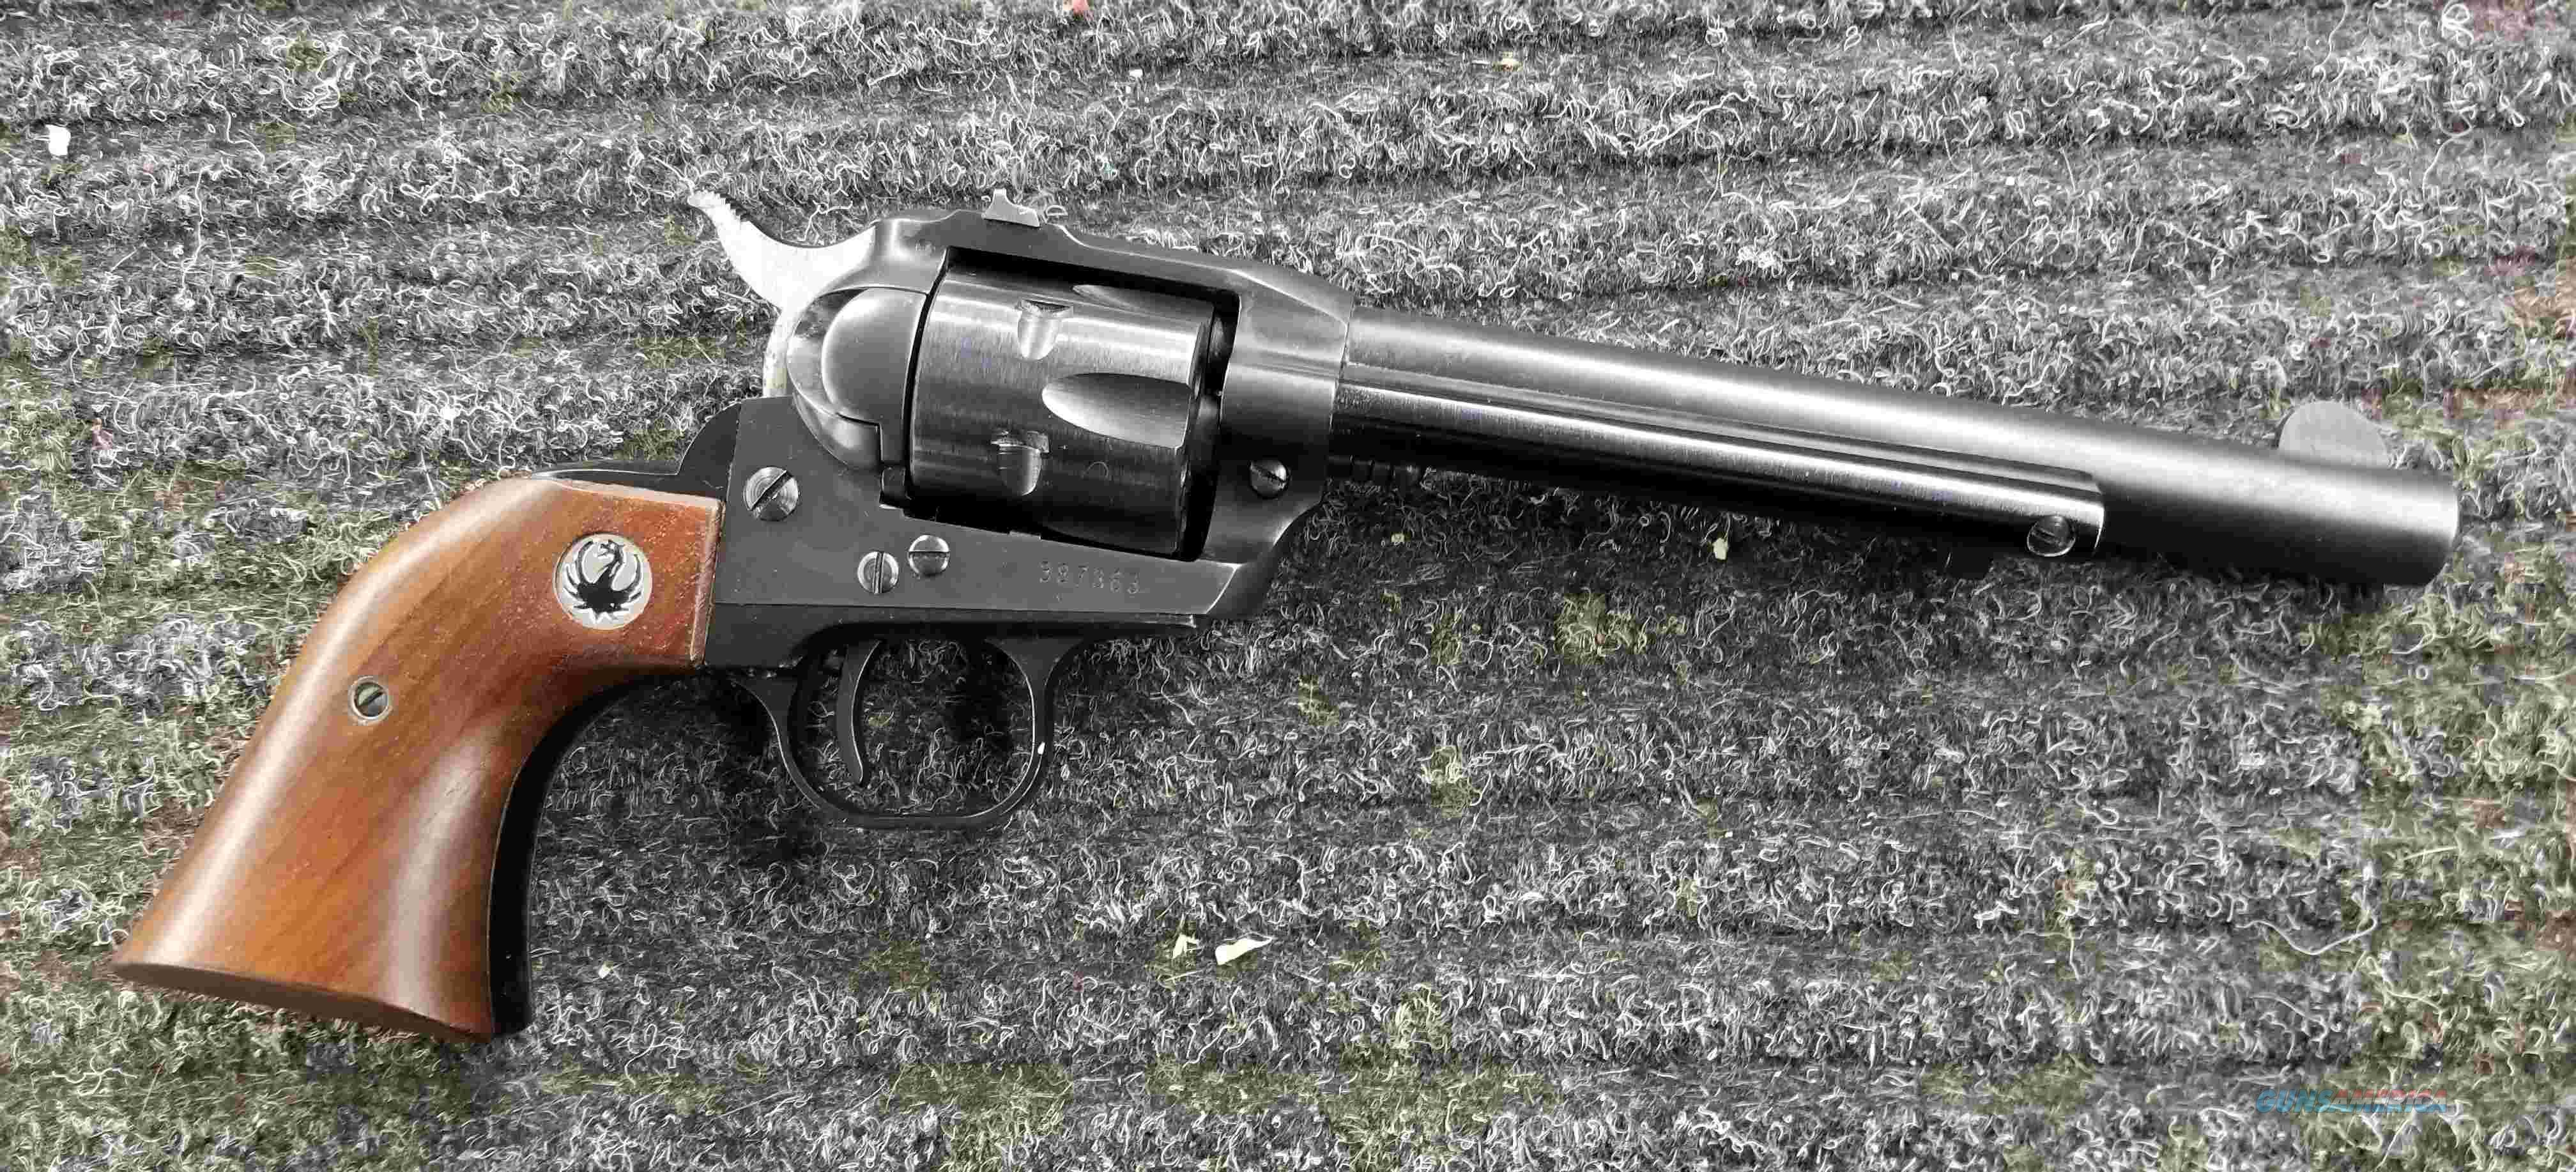 """Ruger Single Six - 22LR - 6 1/2"""" - Free Shipping !!!  Guns > Pistols > Ruger Single Action Revolvers > Single Six Type"""